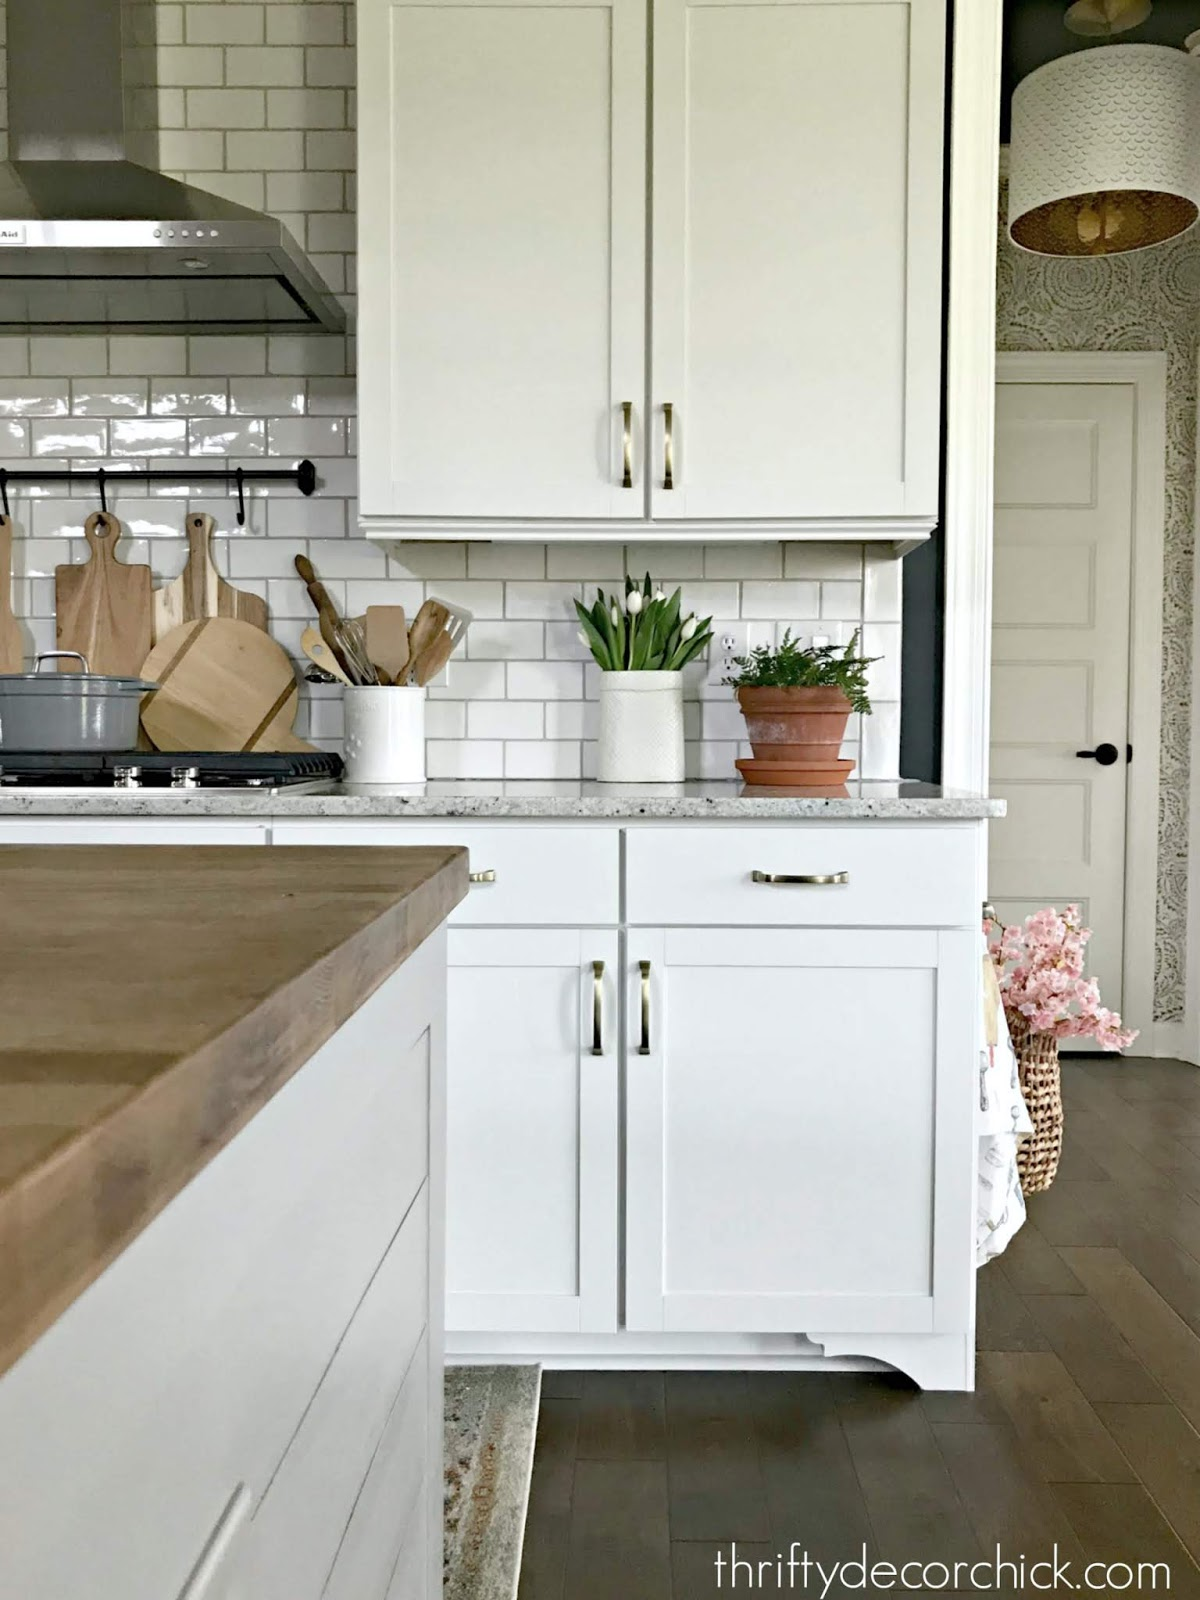 How to add light rails under cabinets